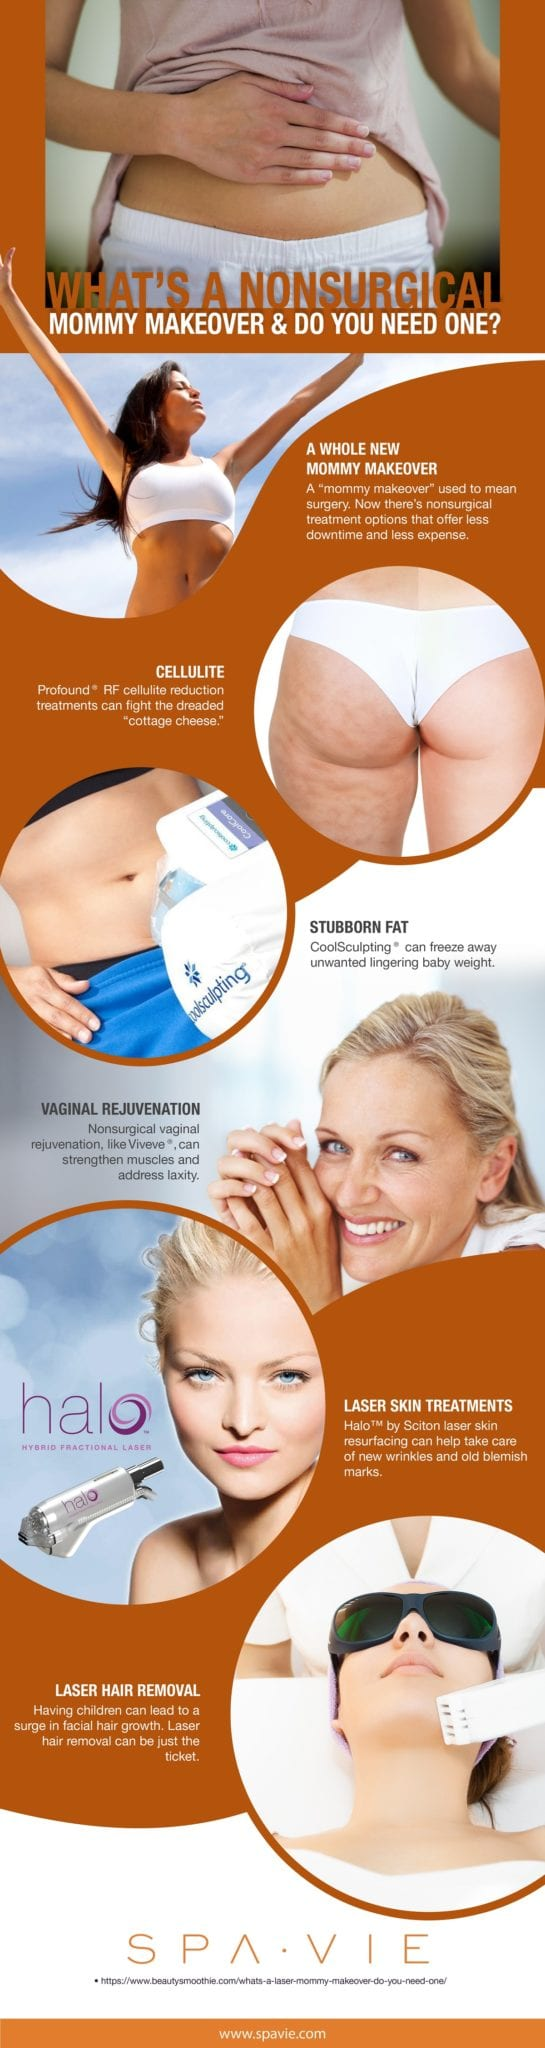 What's A Nonsurgical Mommy Makeover & Do You Need One? [Infographic]